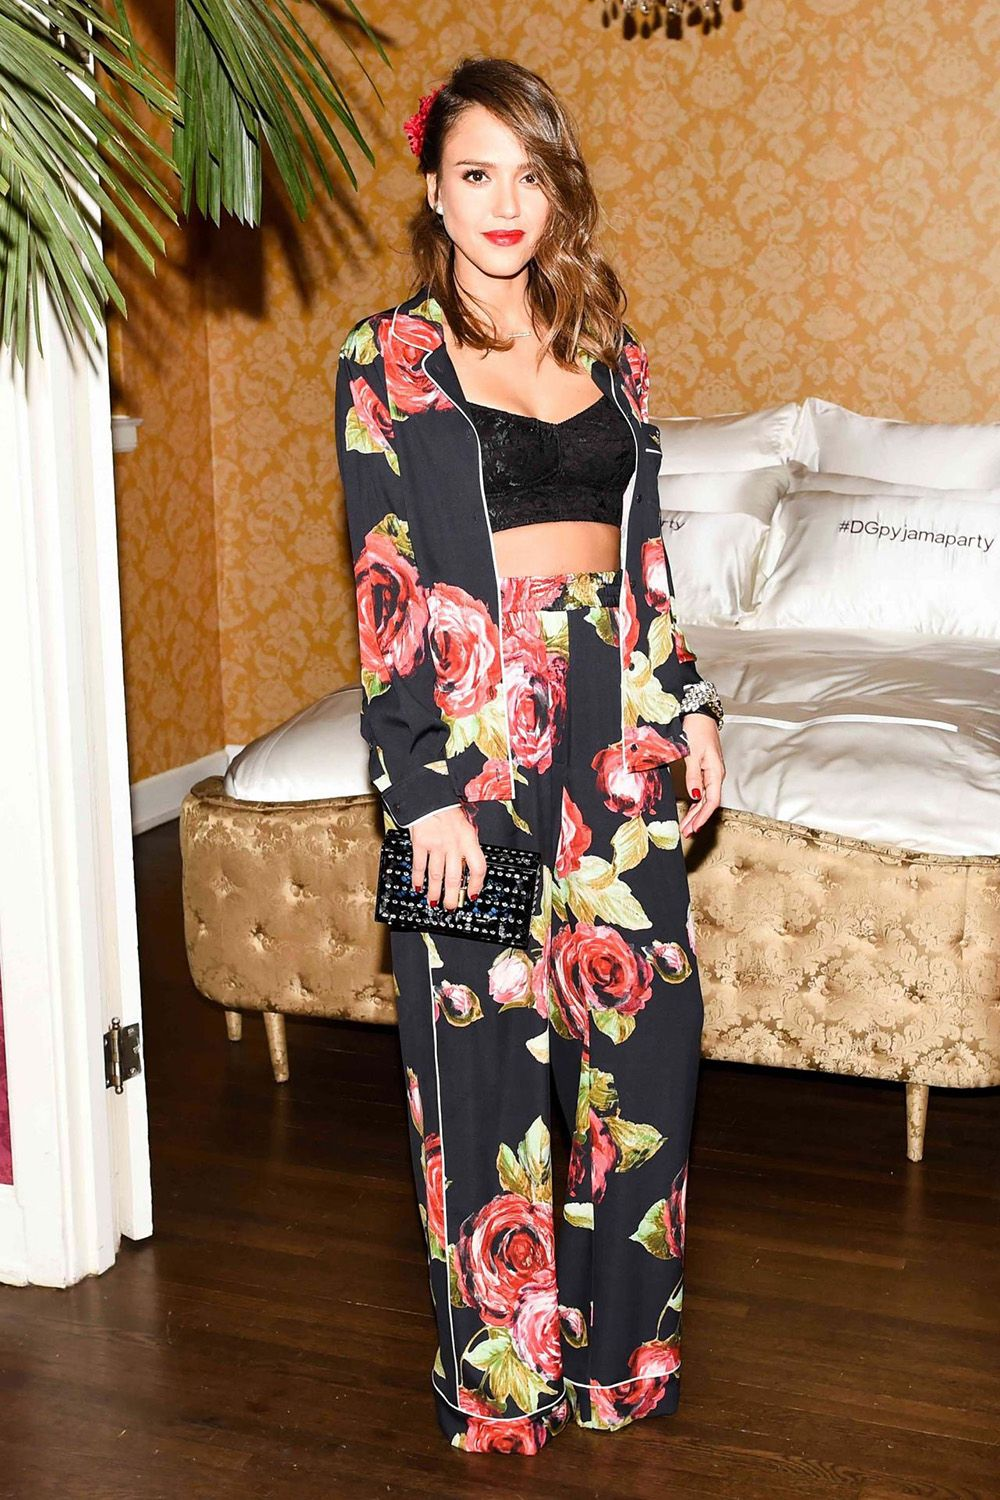 "<p>Whether you're going to an <em>actual</em> pajama party—like<span class=""redactor-invisible-space""> Jessica Alba at a Dolce & Gabbana event in New York City—<span class=""redactor-invisible-space"">or doing cocktail hour, luxurious loungewear in chic floral prints is the look <em>du jour</em>.</span></span></p>"